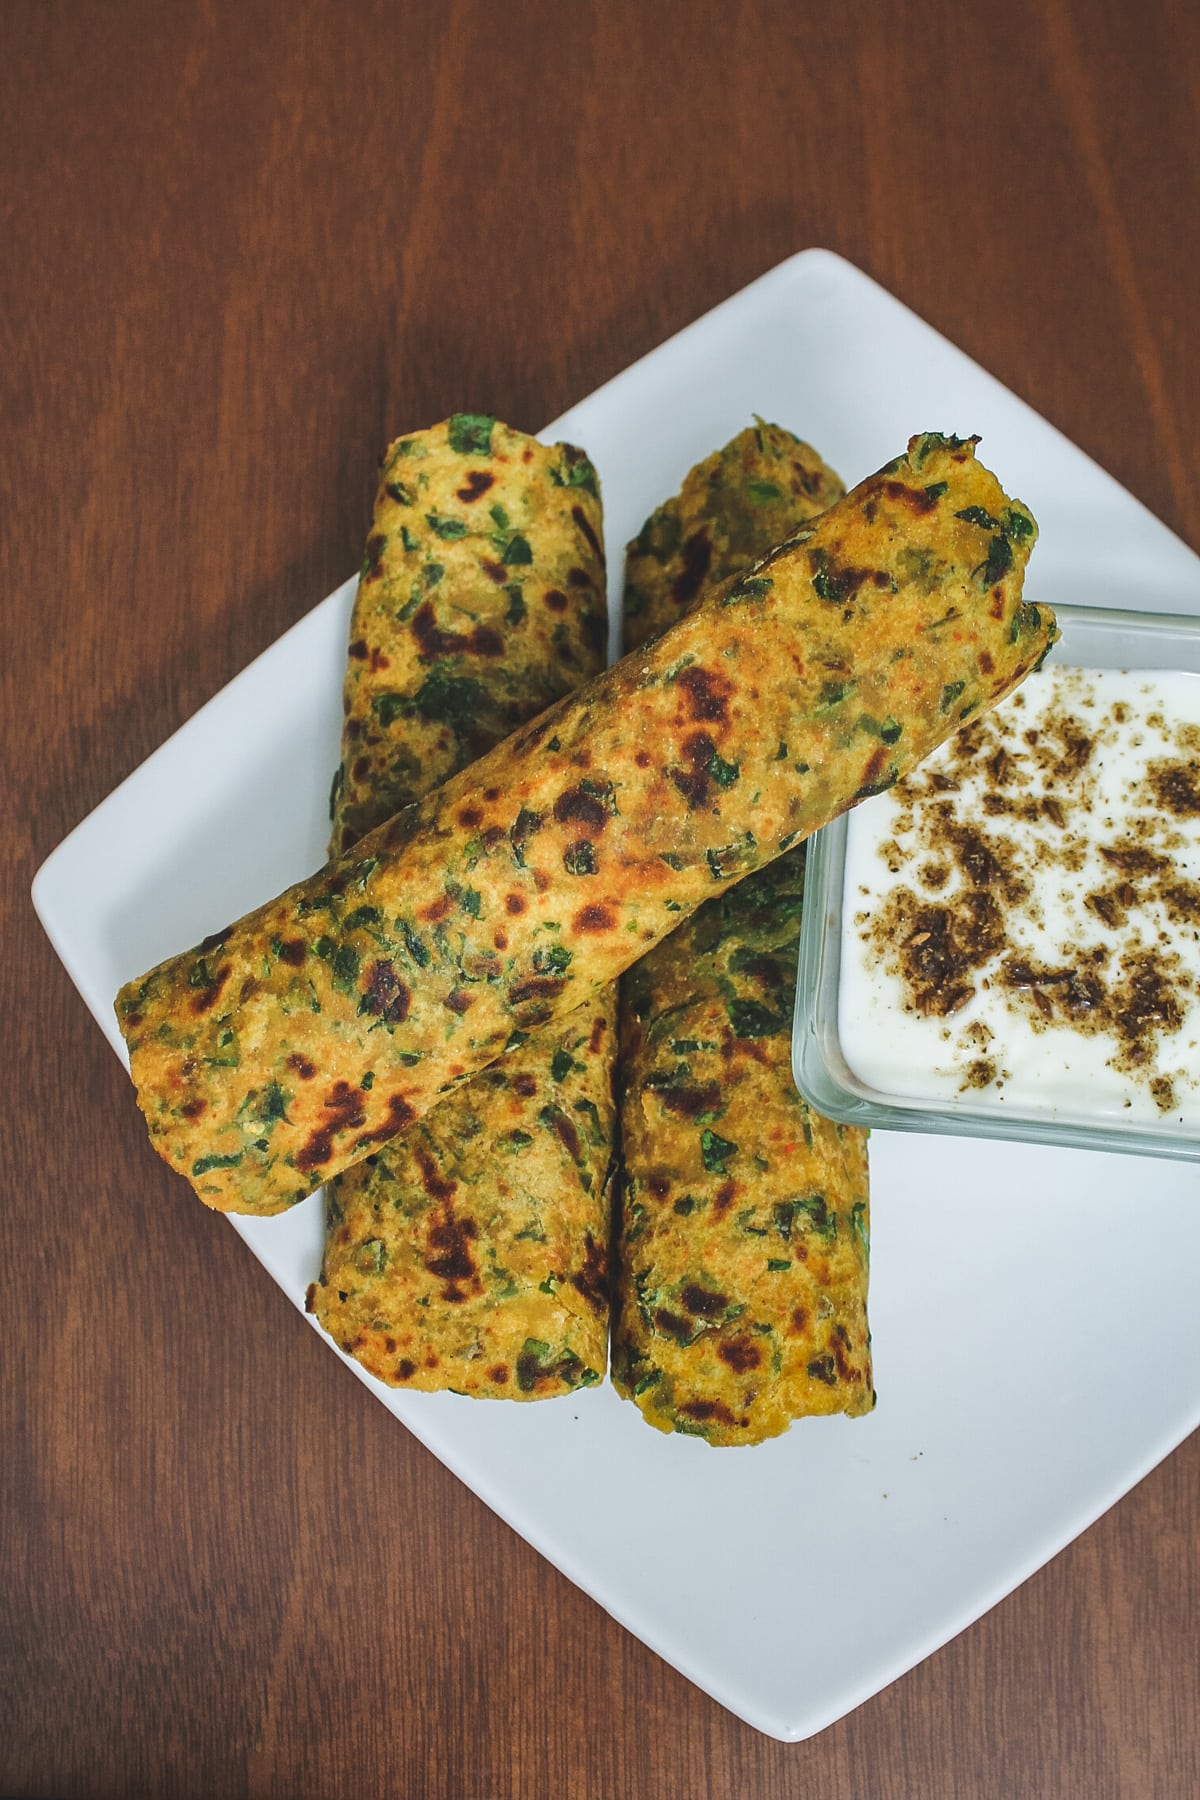 Top view of 3 methi paratha served with yogurt.